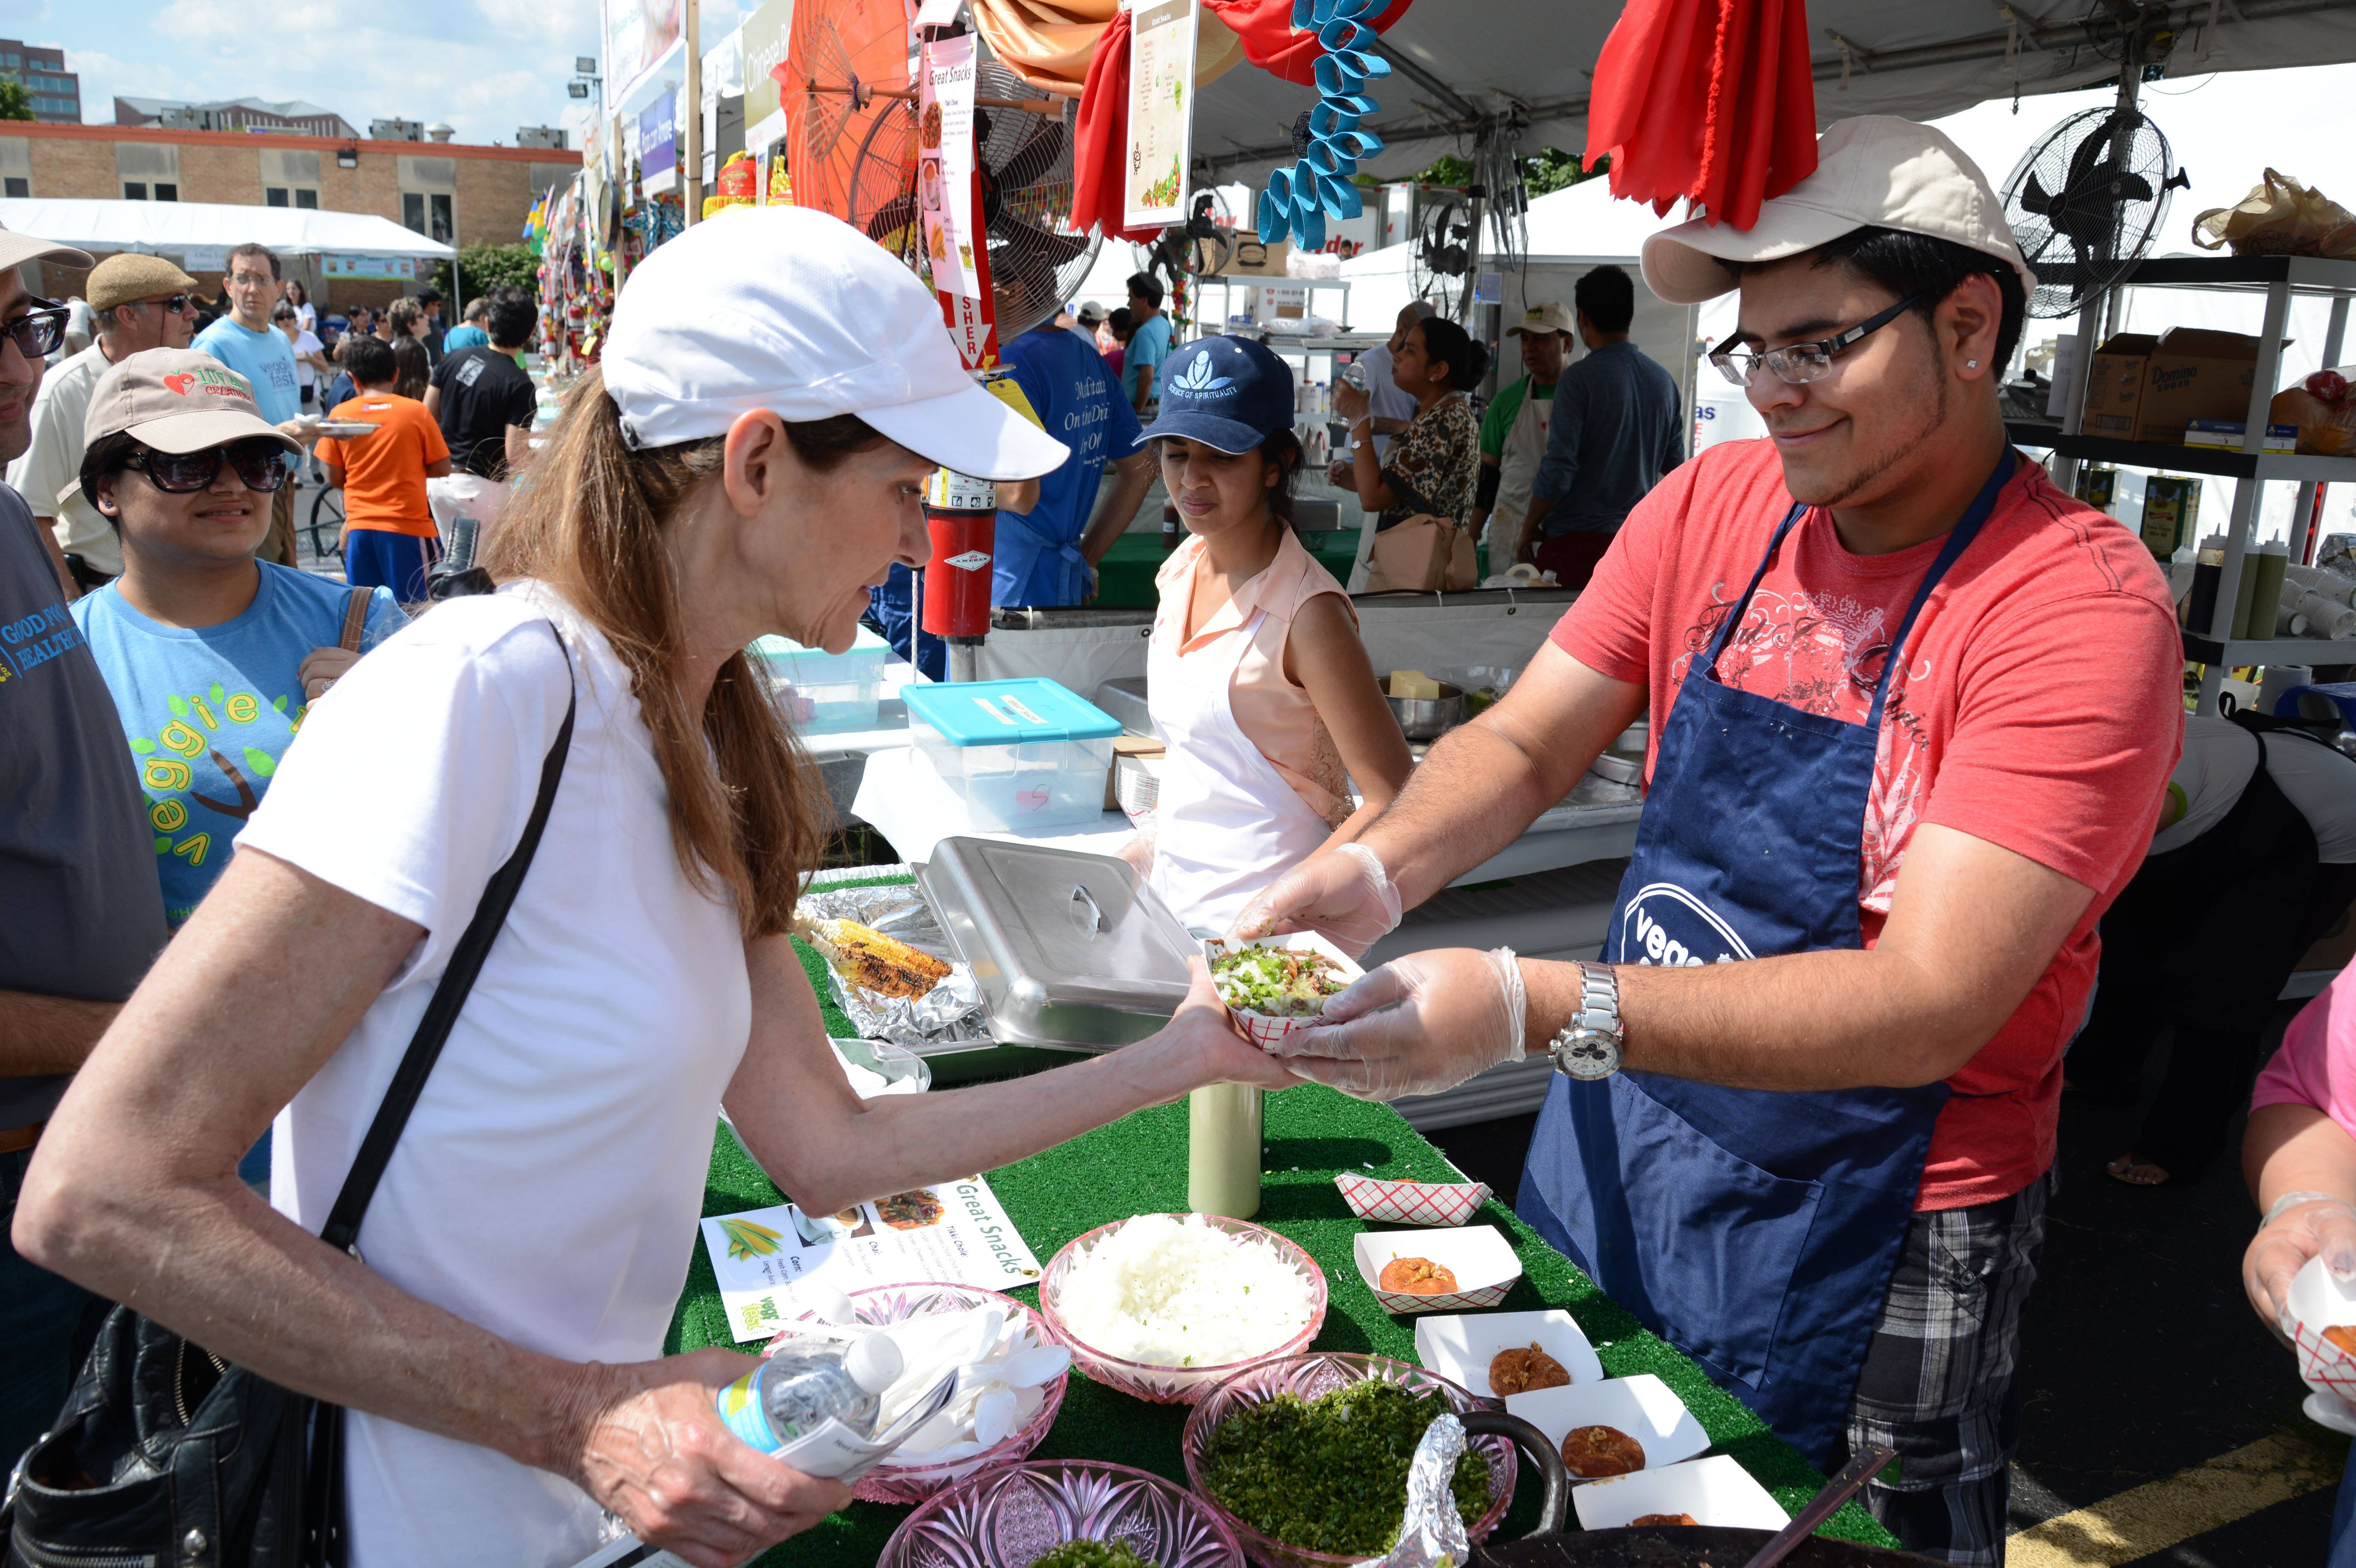 An international food court; speeches by doctors, authors and meditation experts; live music; and children's activities will be part of the ninth annual Veggie Fest Aug. 9 and 10 in Naperville.